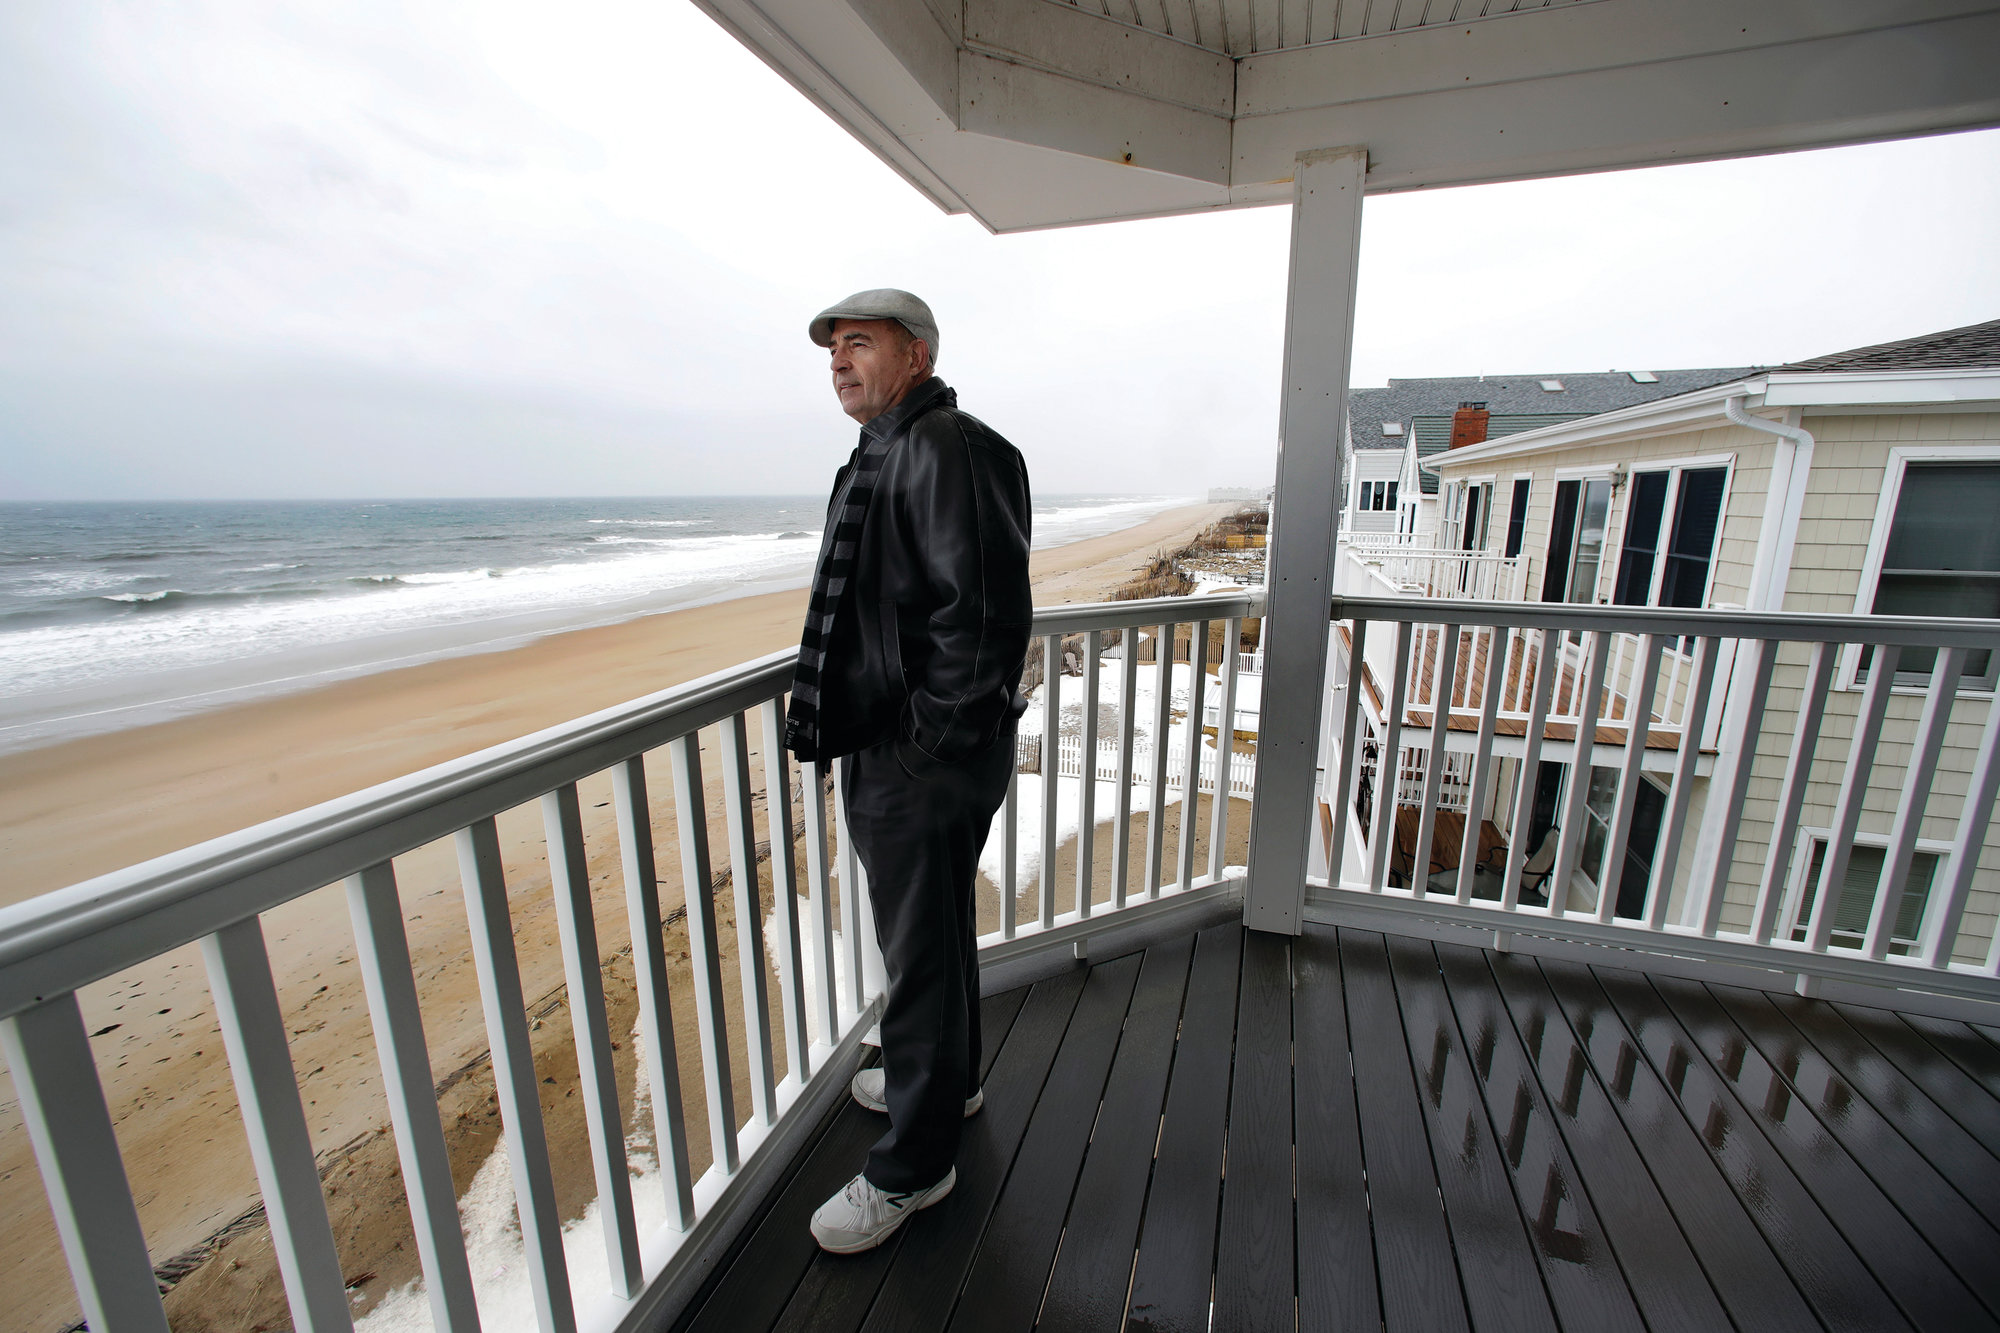 THE ASSOCIATED PRESS  Real estate agent Tom Saab stands on a oceanfront deck at a condo he developed in Salisbury, Massachusetts. Academic researchers say concerns over rising sea levels and increased flooding are having subtle but significant impacts on coastal property values.